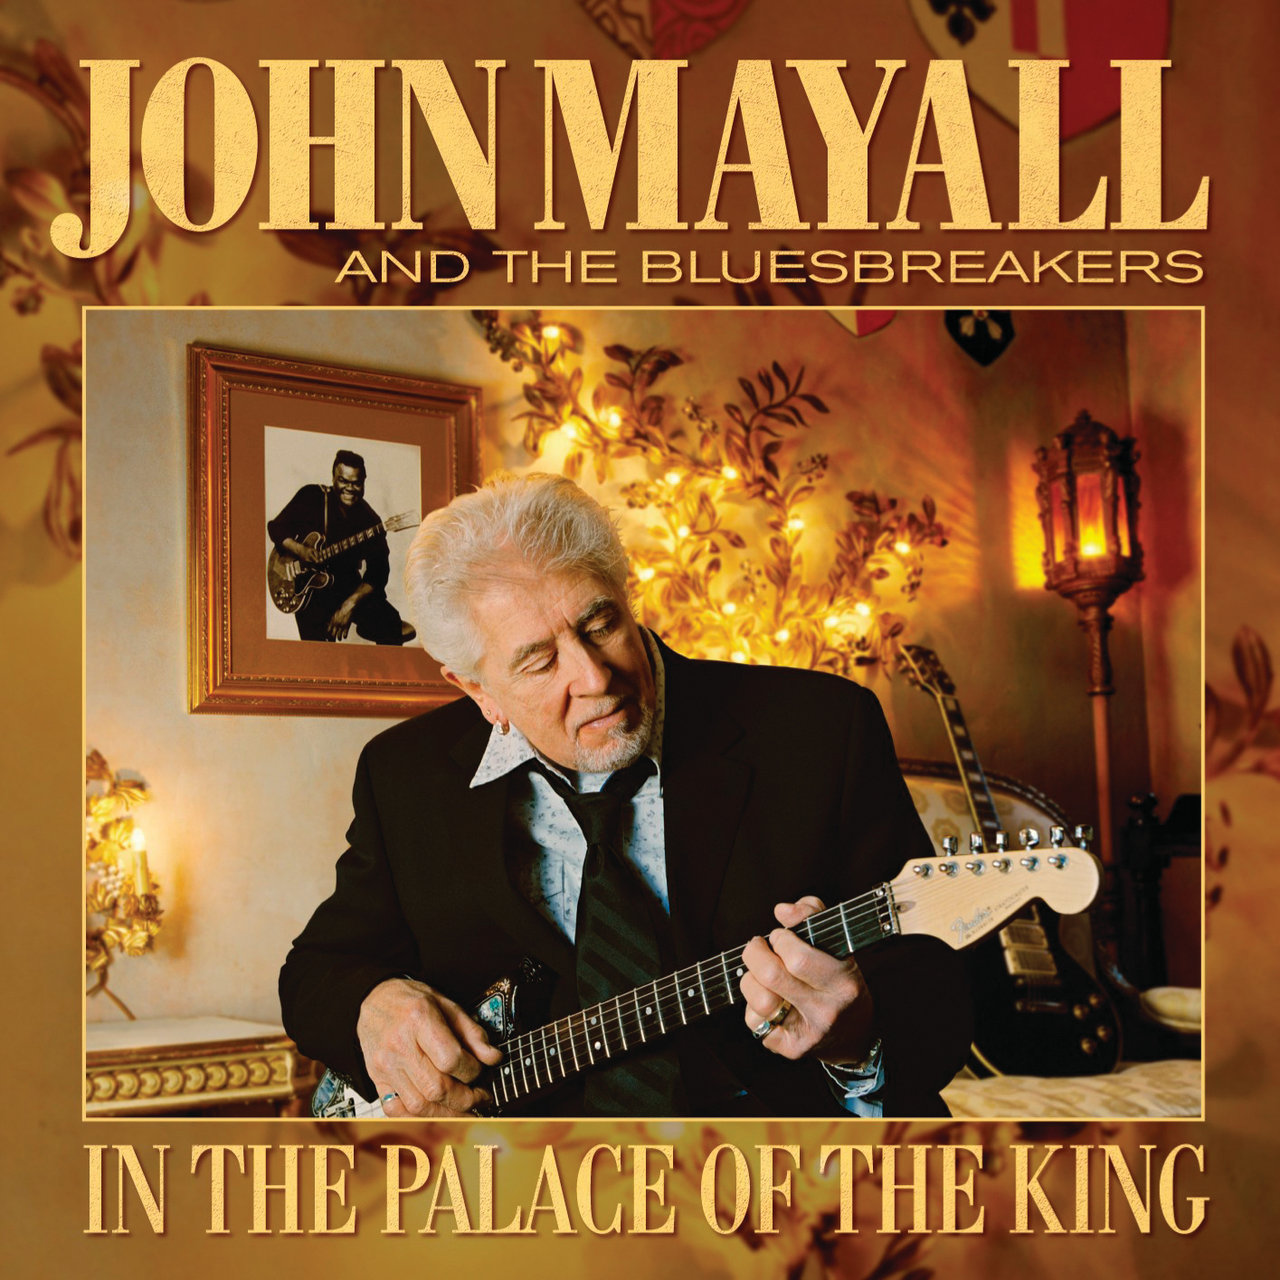 Tidal listen to john mayall and the bluesbreakers on tidal albums publicscrutiny Images